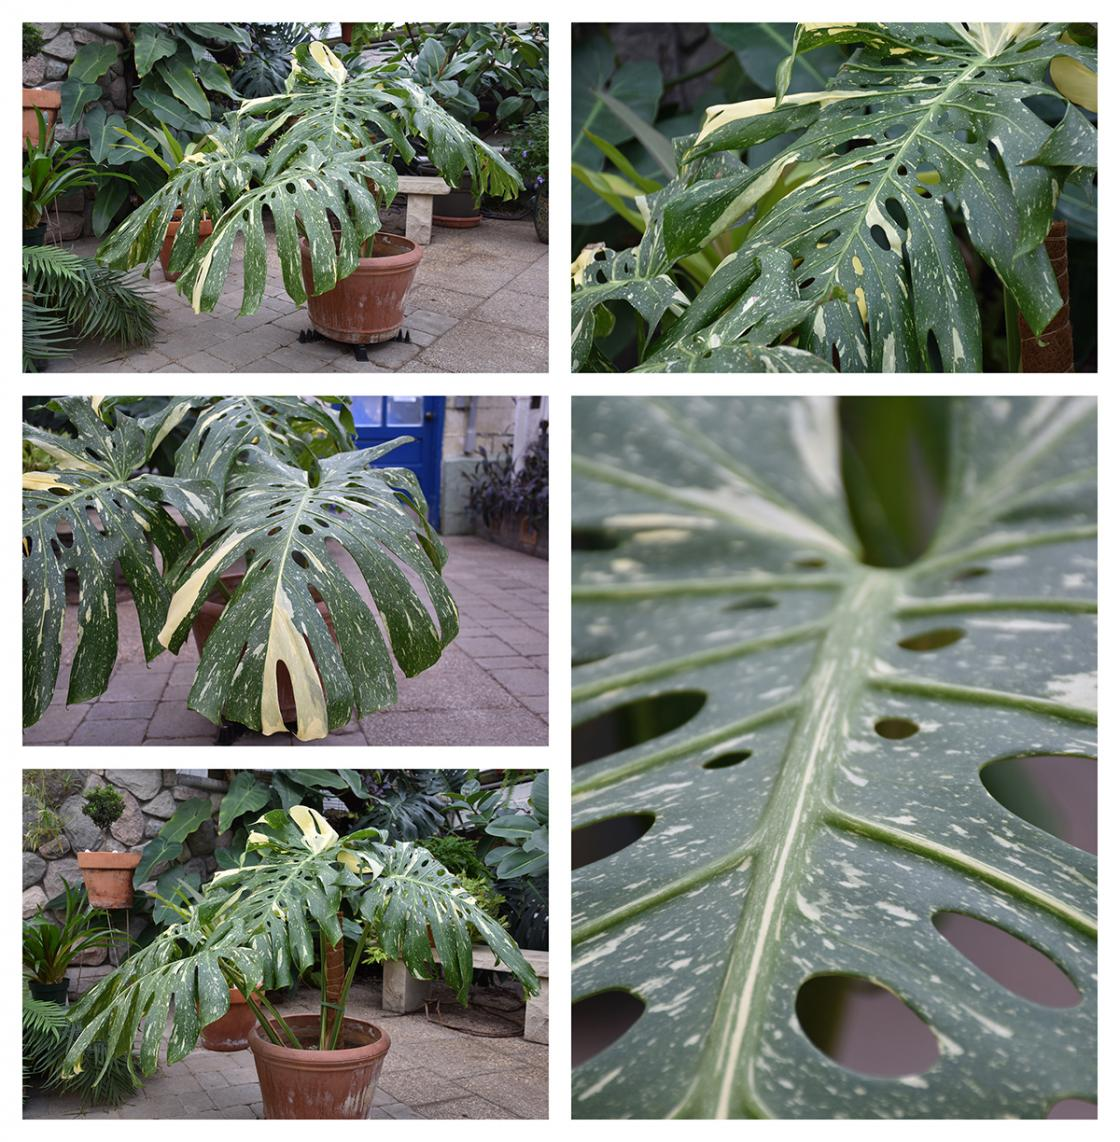 Collage of Monstera Thai Constellation photos taken in the Conservatory Greenhouse.